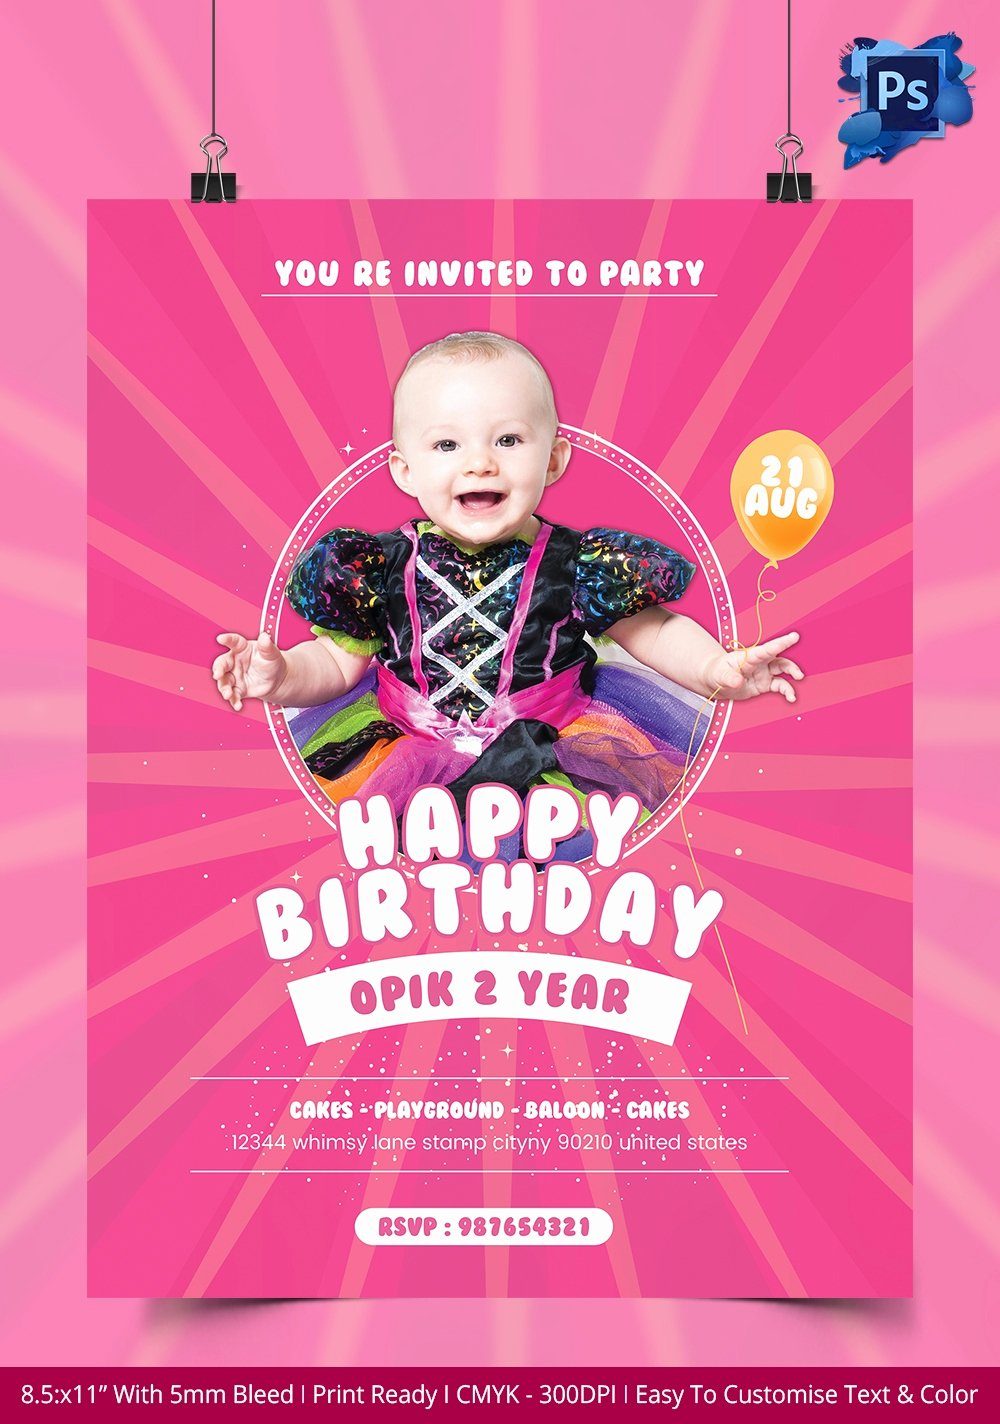 Birthday Party Flyer Template Unique 135 Psd Flyer Templates – Free Psd Eps Ai Indesign